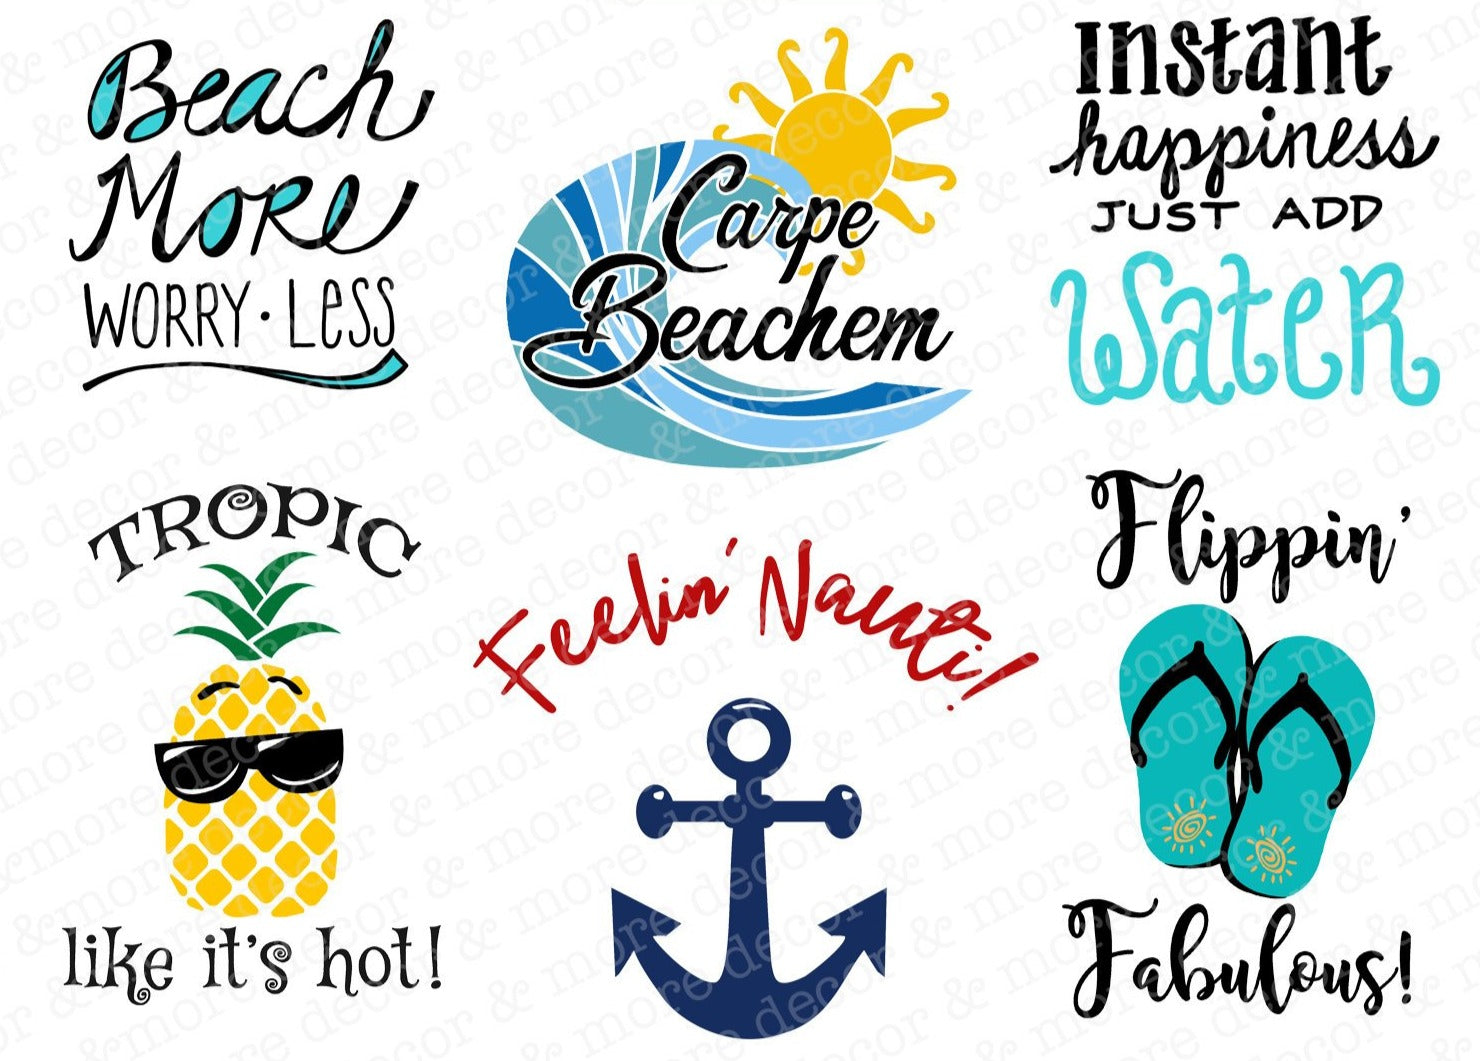 BEACH SVG FILE BUNDLE, Funny Beach SVG Files, Beach Saying SVG Files, Beach Quote SVG Files, Beach Shirt SVG Files